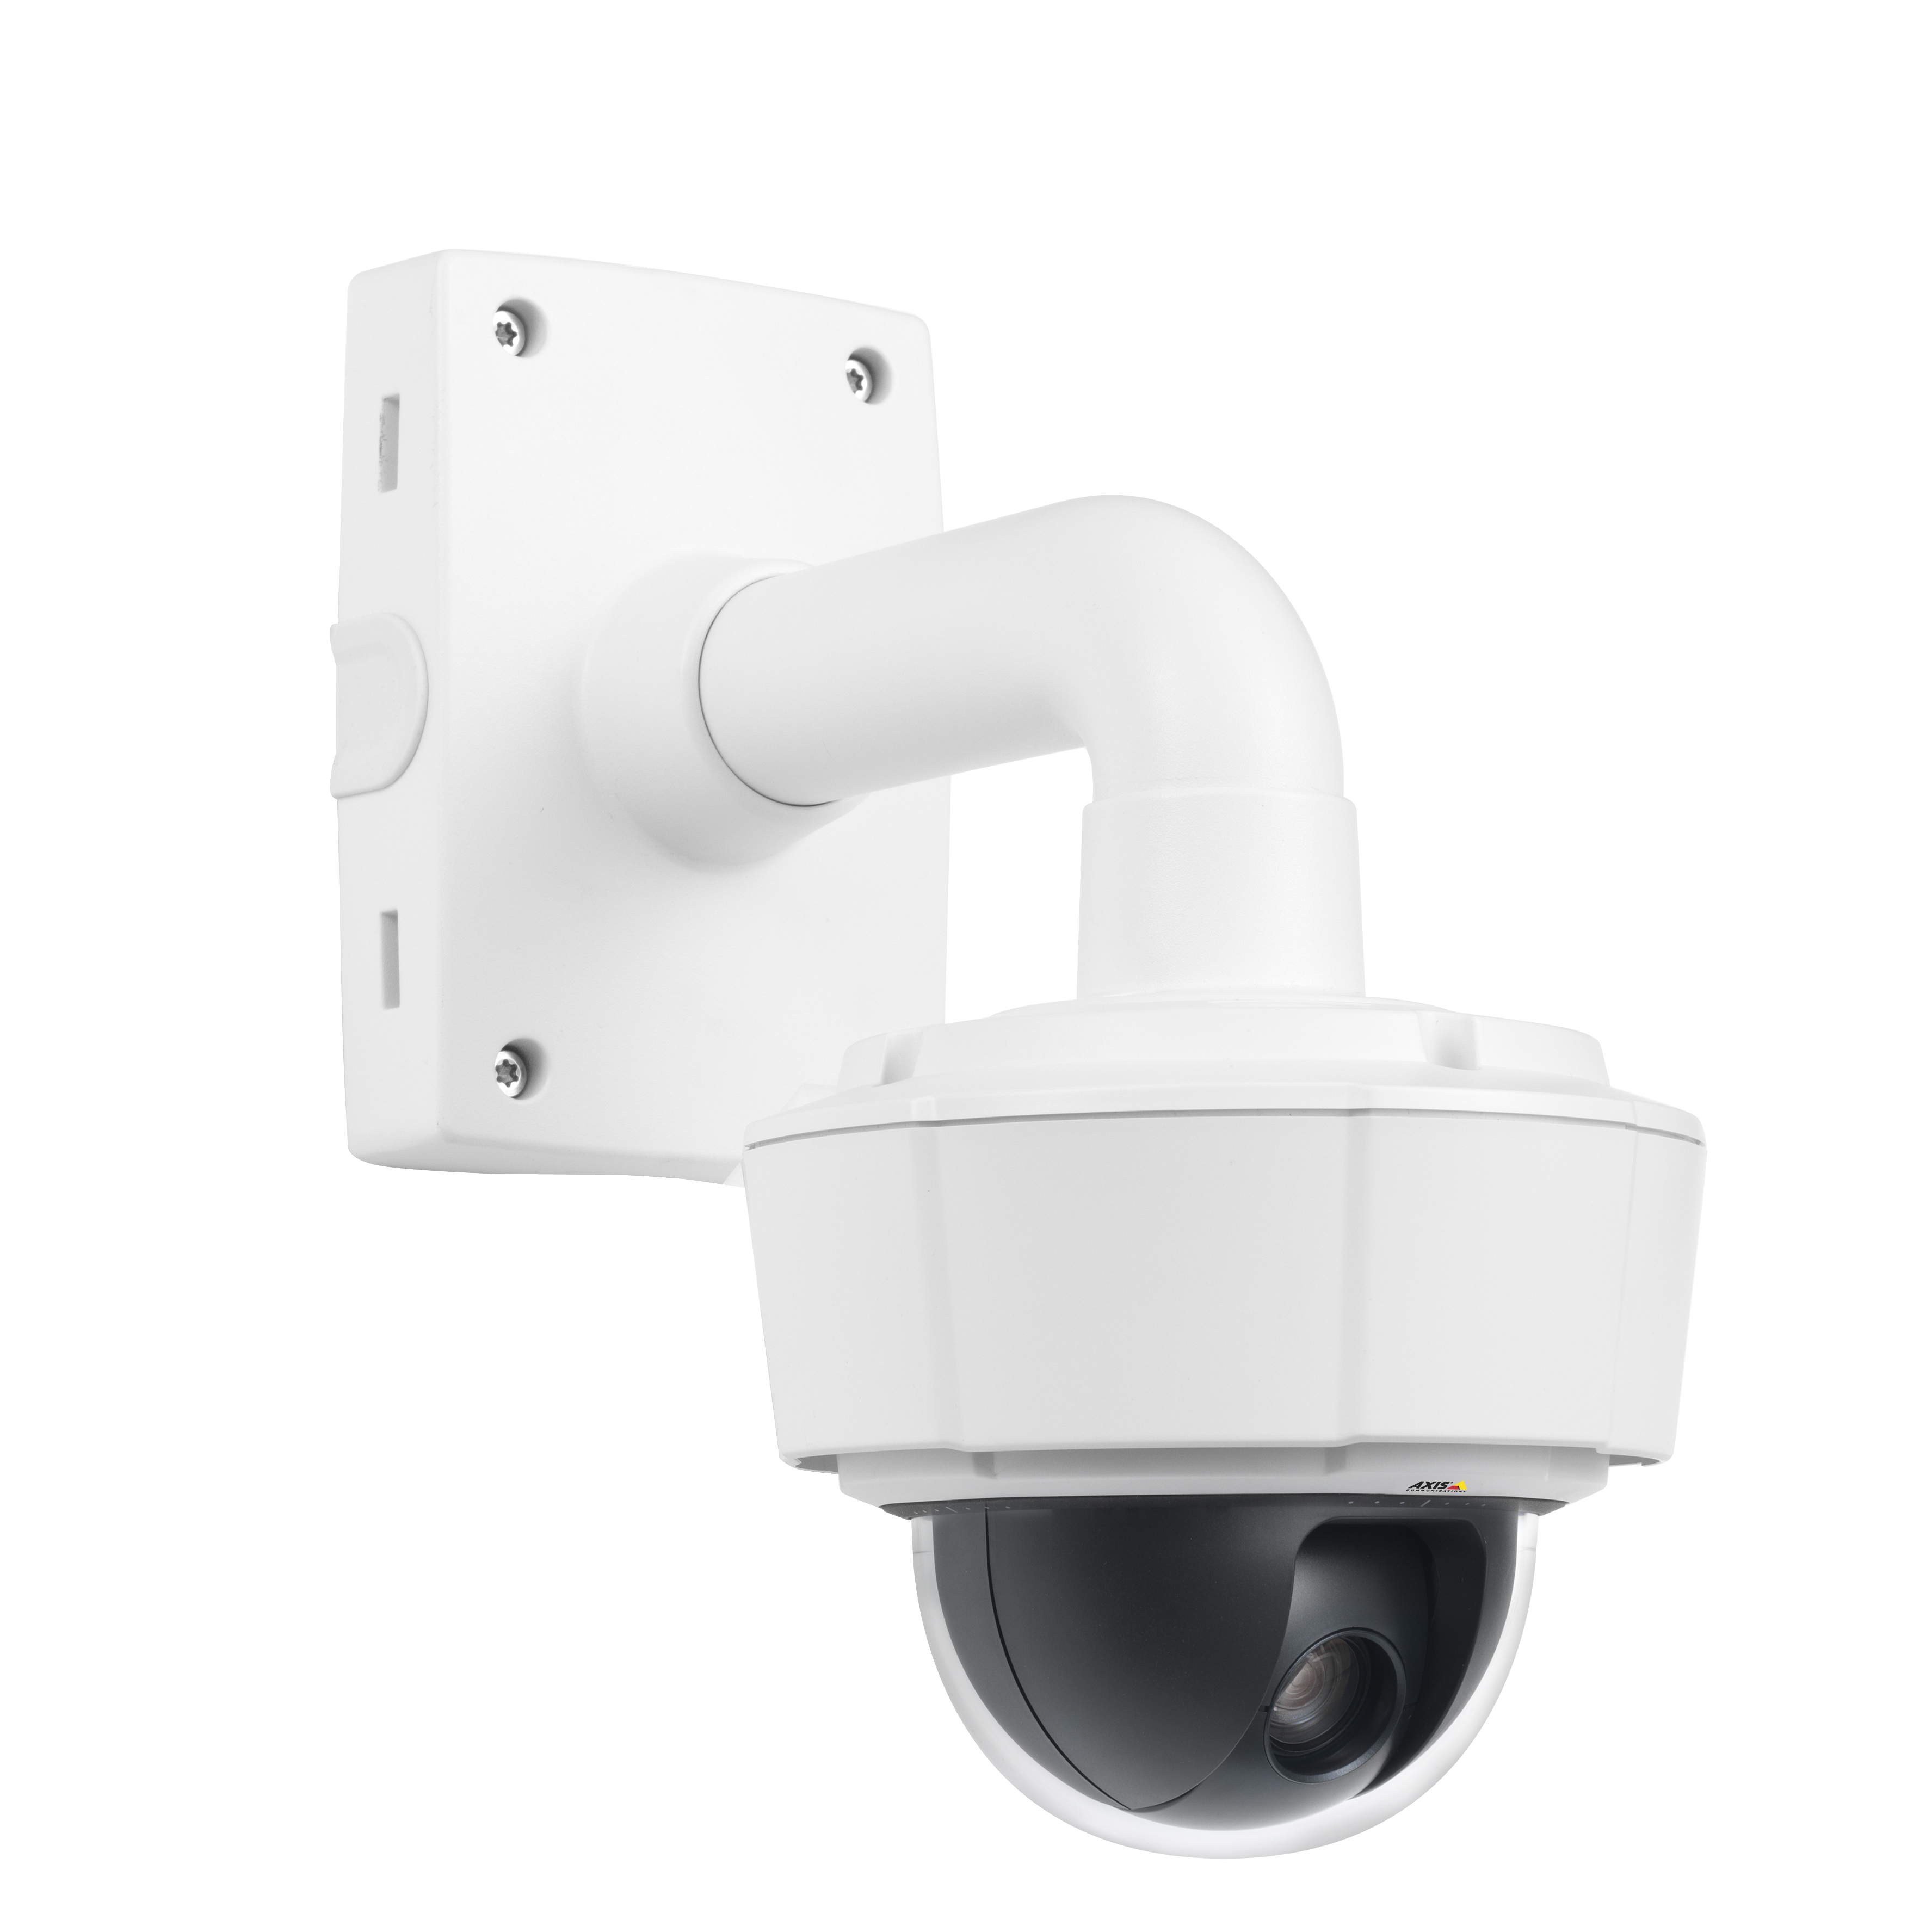 Axis Security Cameras reliable workhorses